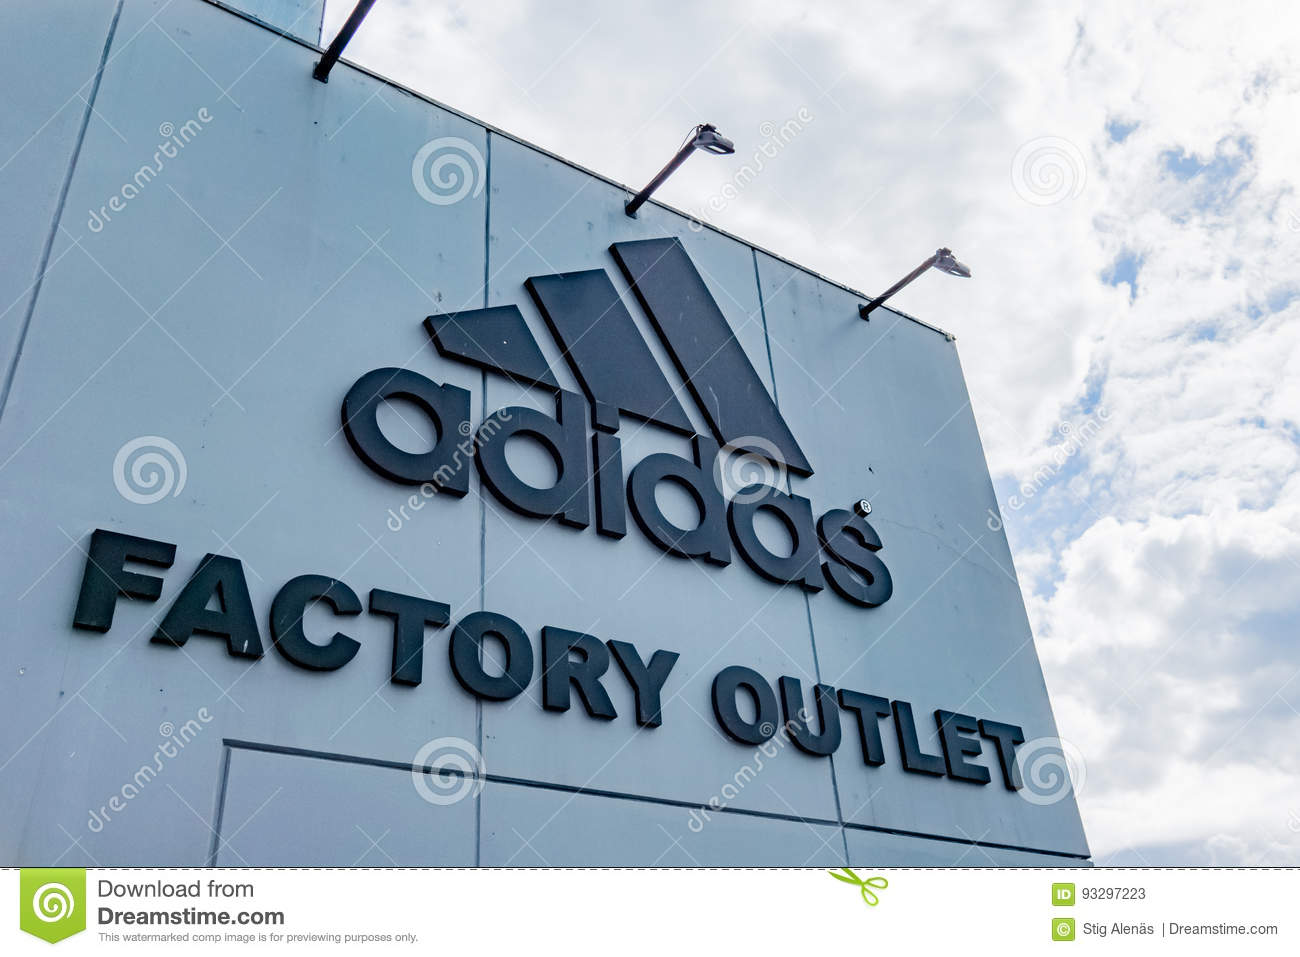 Adidas Factory Outlet. Sign Aganist The Sky. Editorial Stock Photo ...